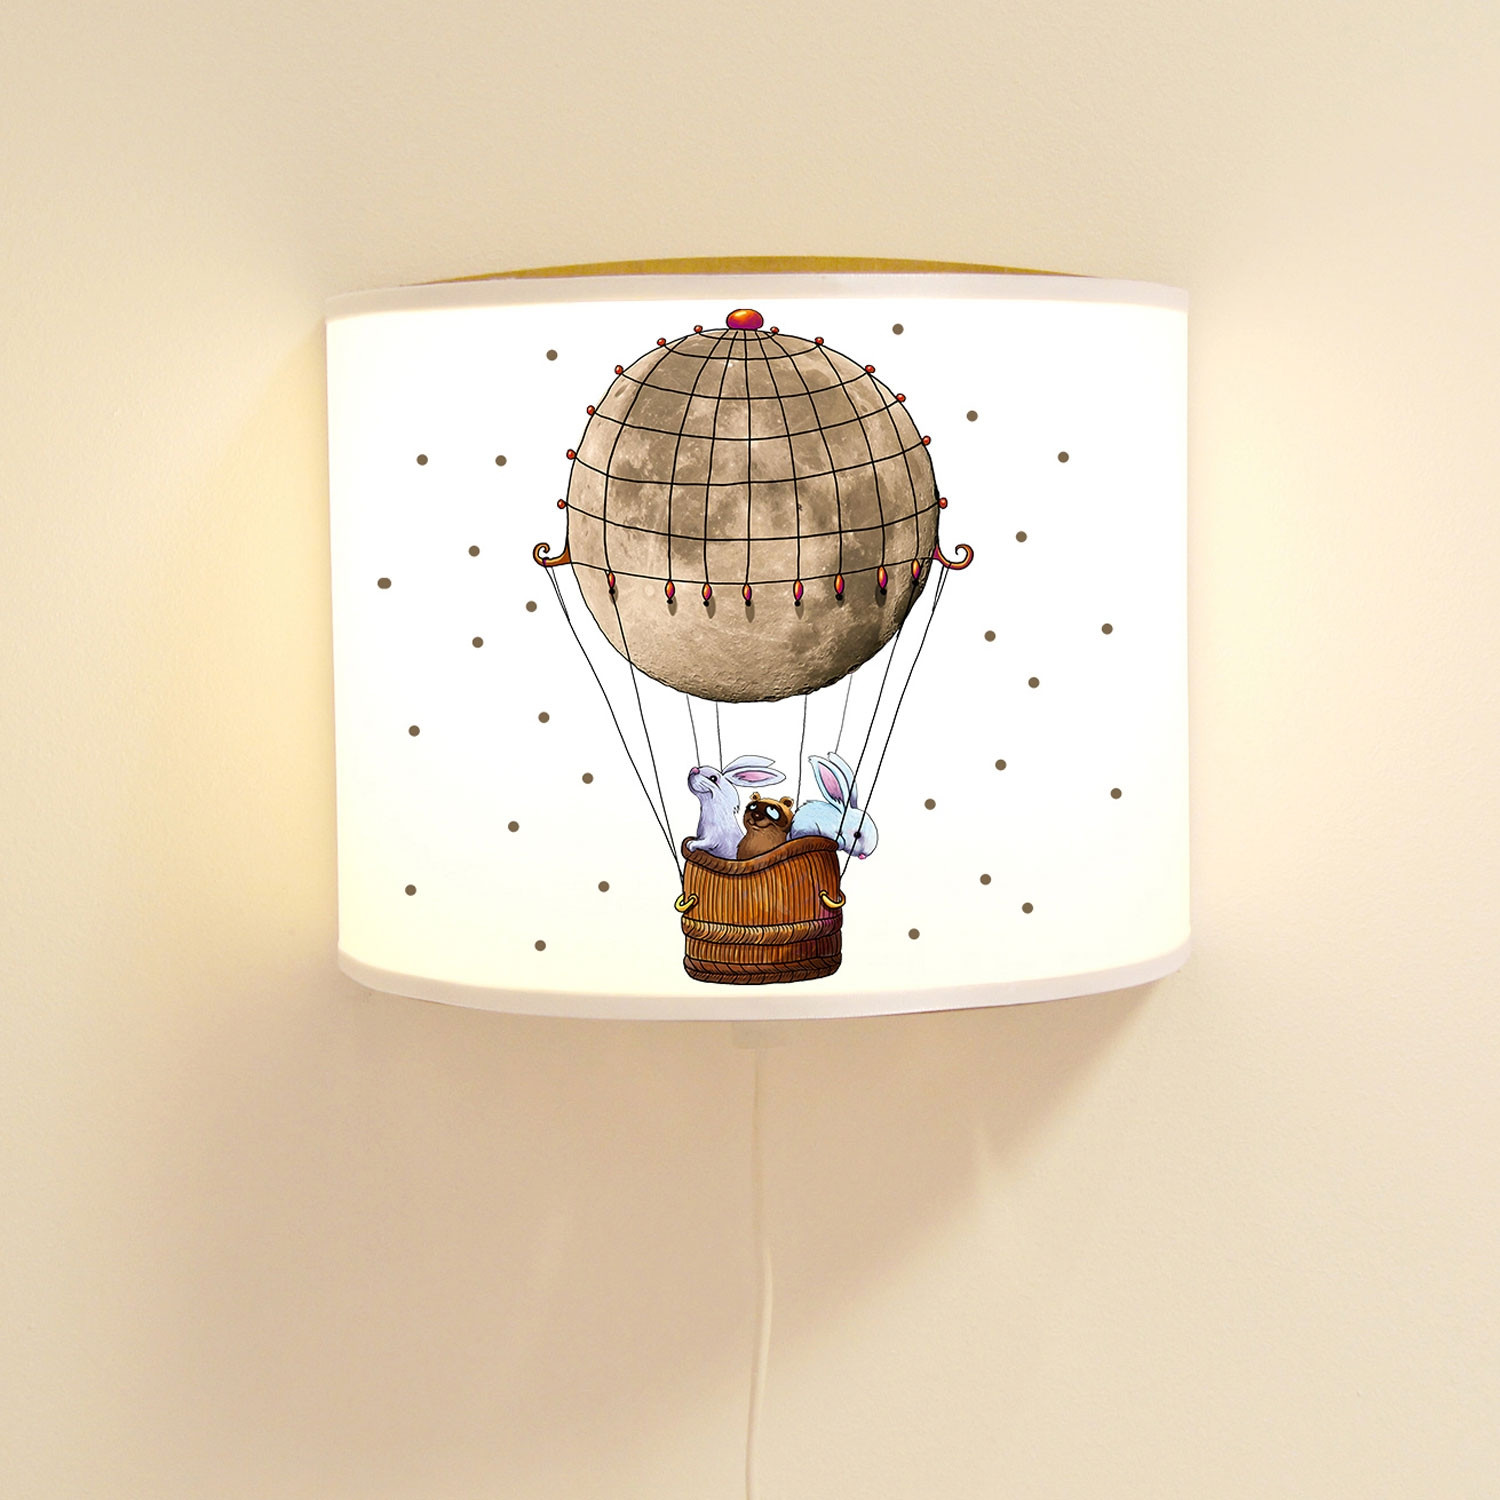 kinderlampe wandlampe hei luftballon lampe motivlampe mit. Black Bedroom Furniture Sets. Home Design Ideas